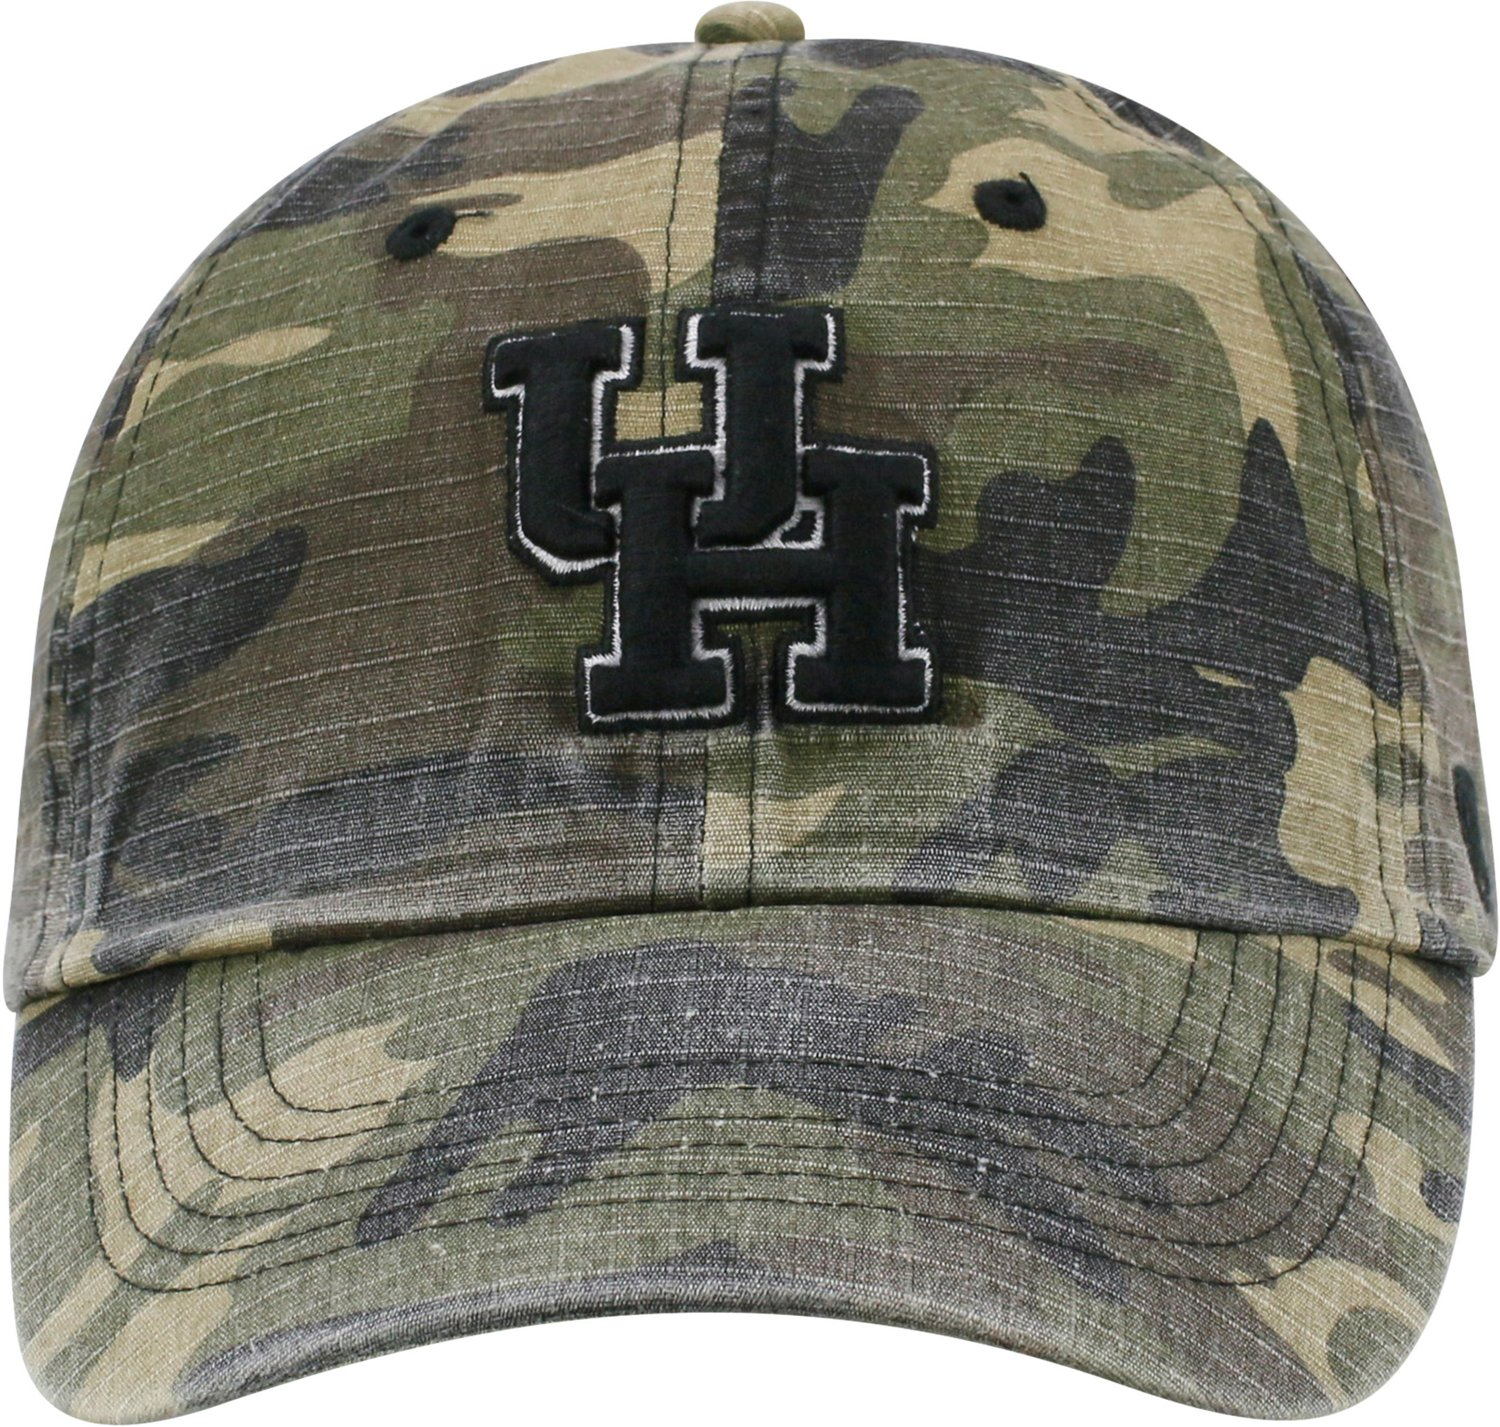 lowest price 2a19f 8cd4f Top of the World Men s University of Houston Heroes Camo Ball Cap   Academy